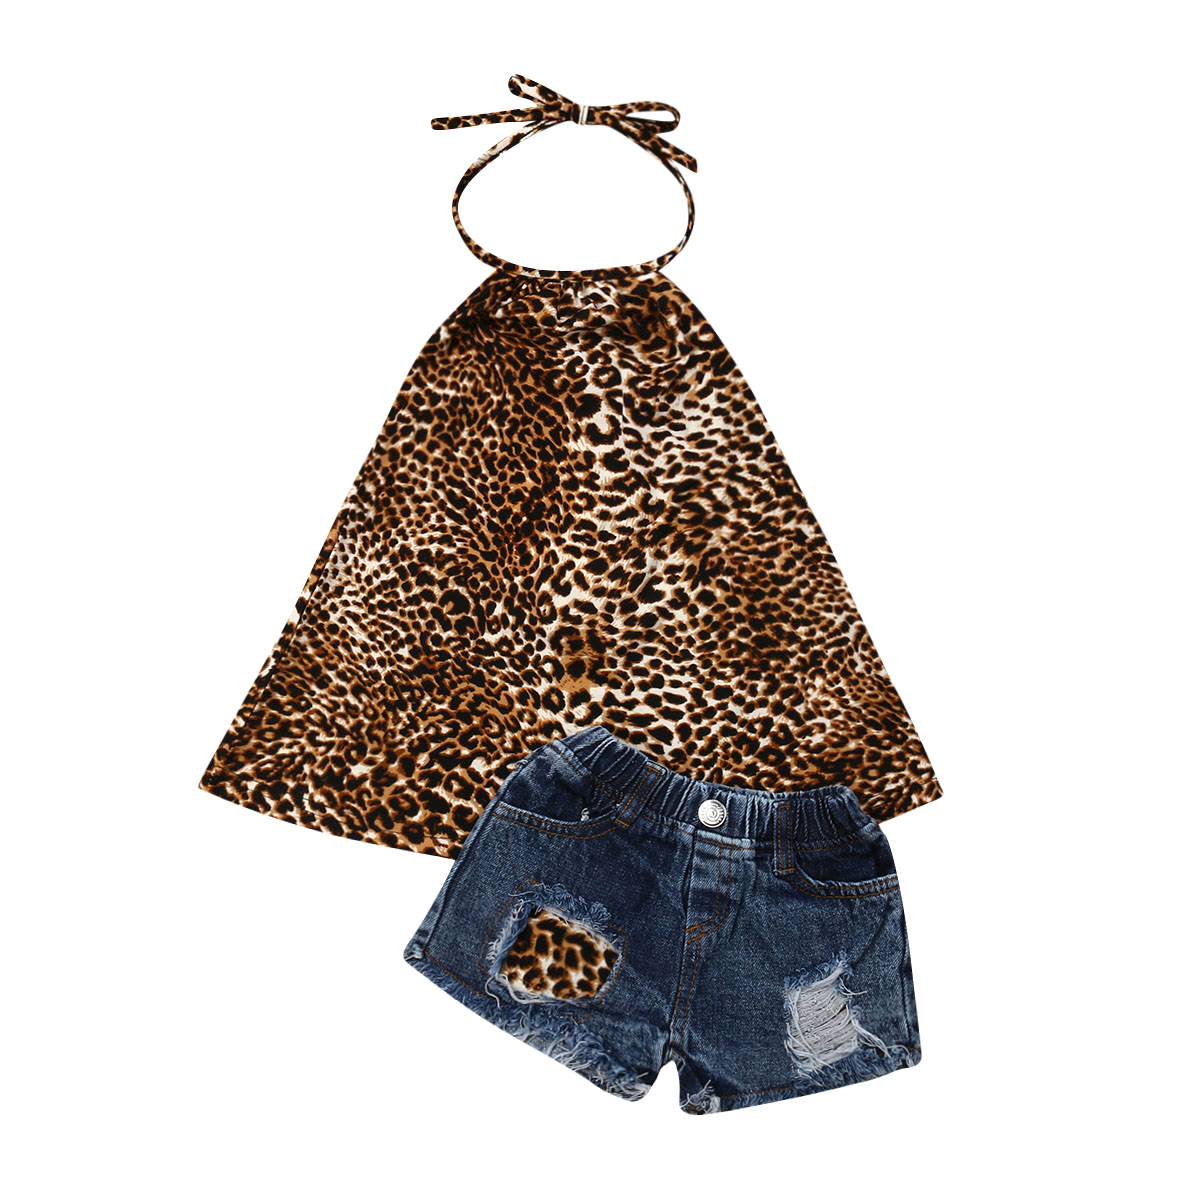 1a7a11352392 2Pcs Summer Infant Kids Baby Girls Clothes Sets Sleeveless Leopard Print  Tops Jeans Shorts Outfit Clothes